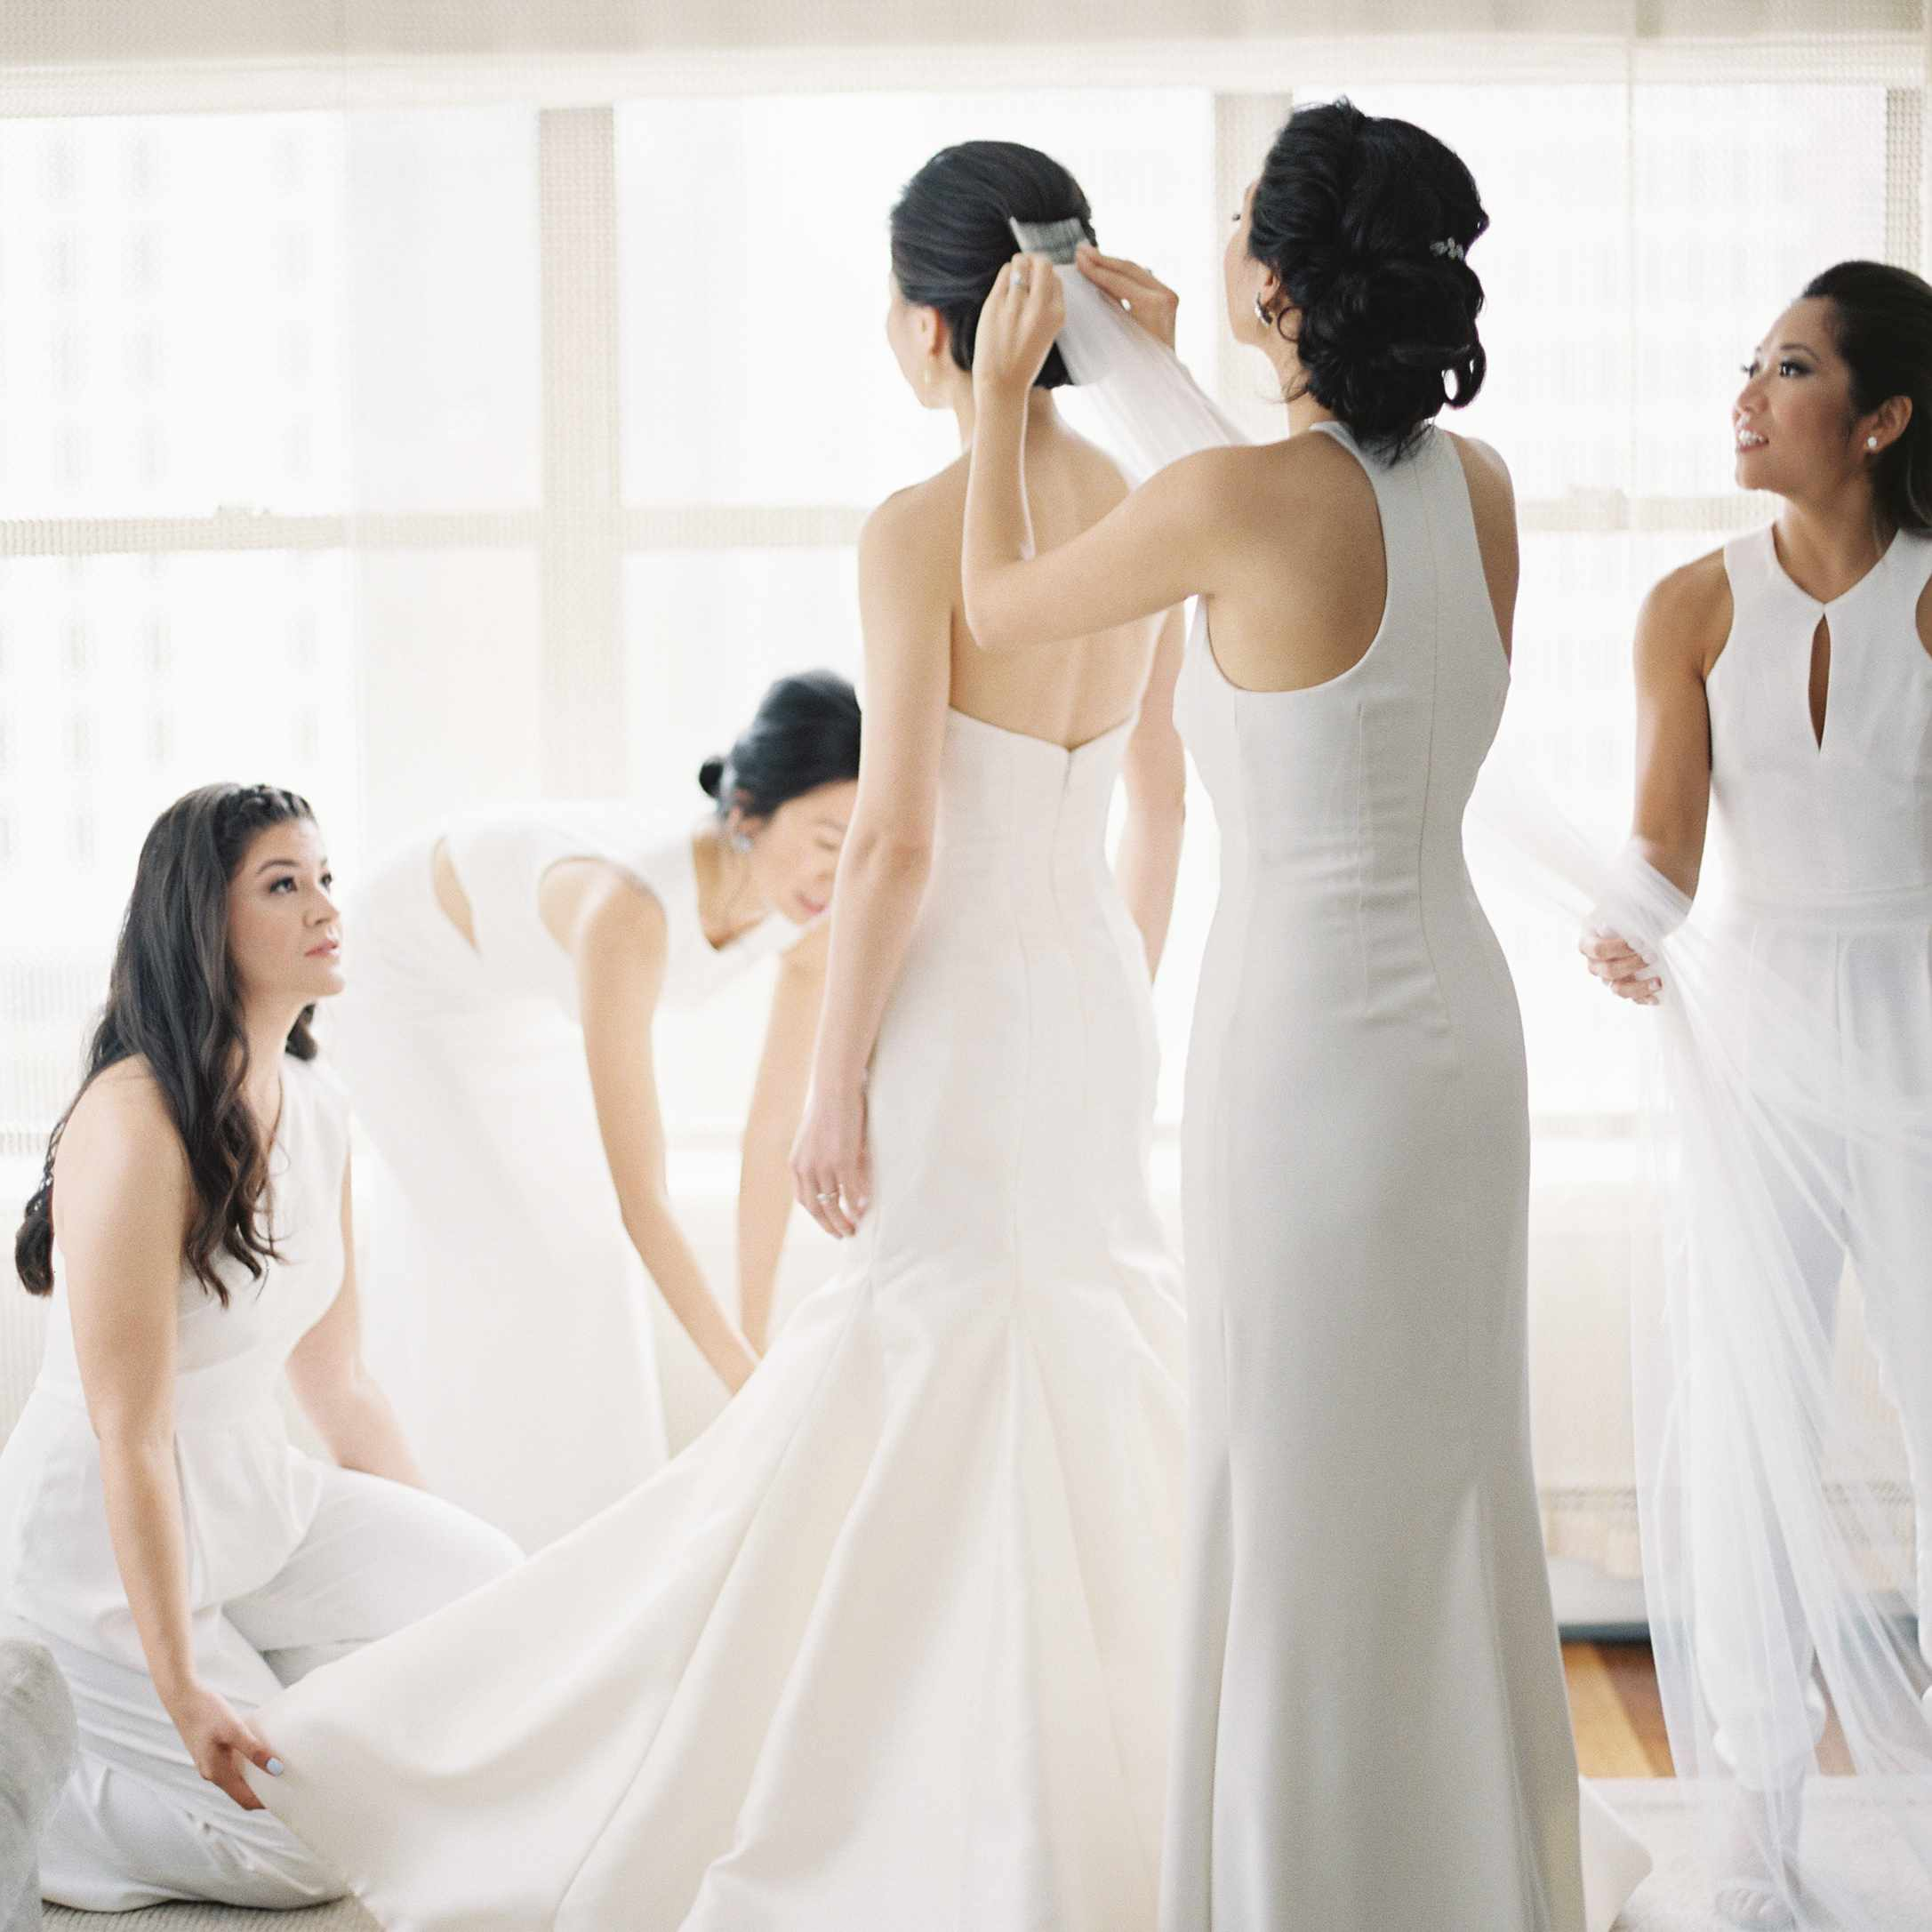 getting ready white bridesmaids dresses